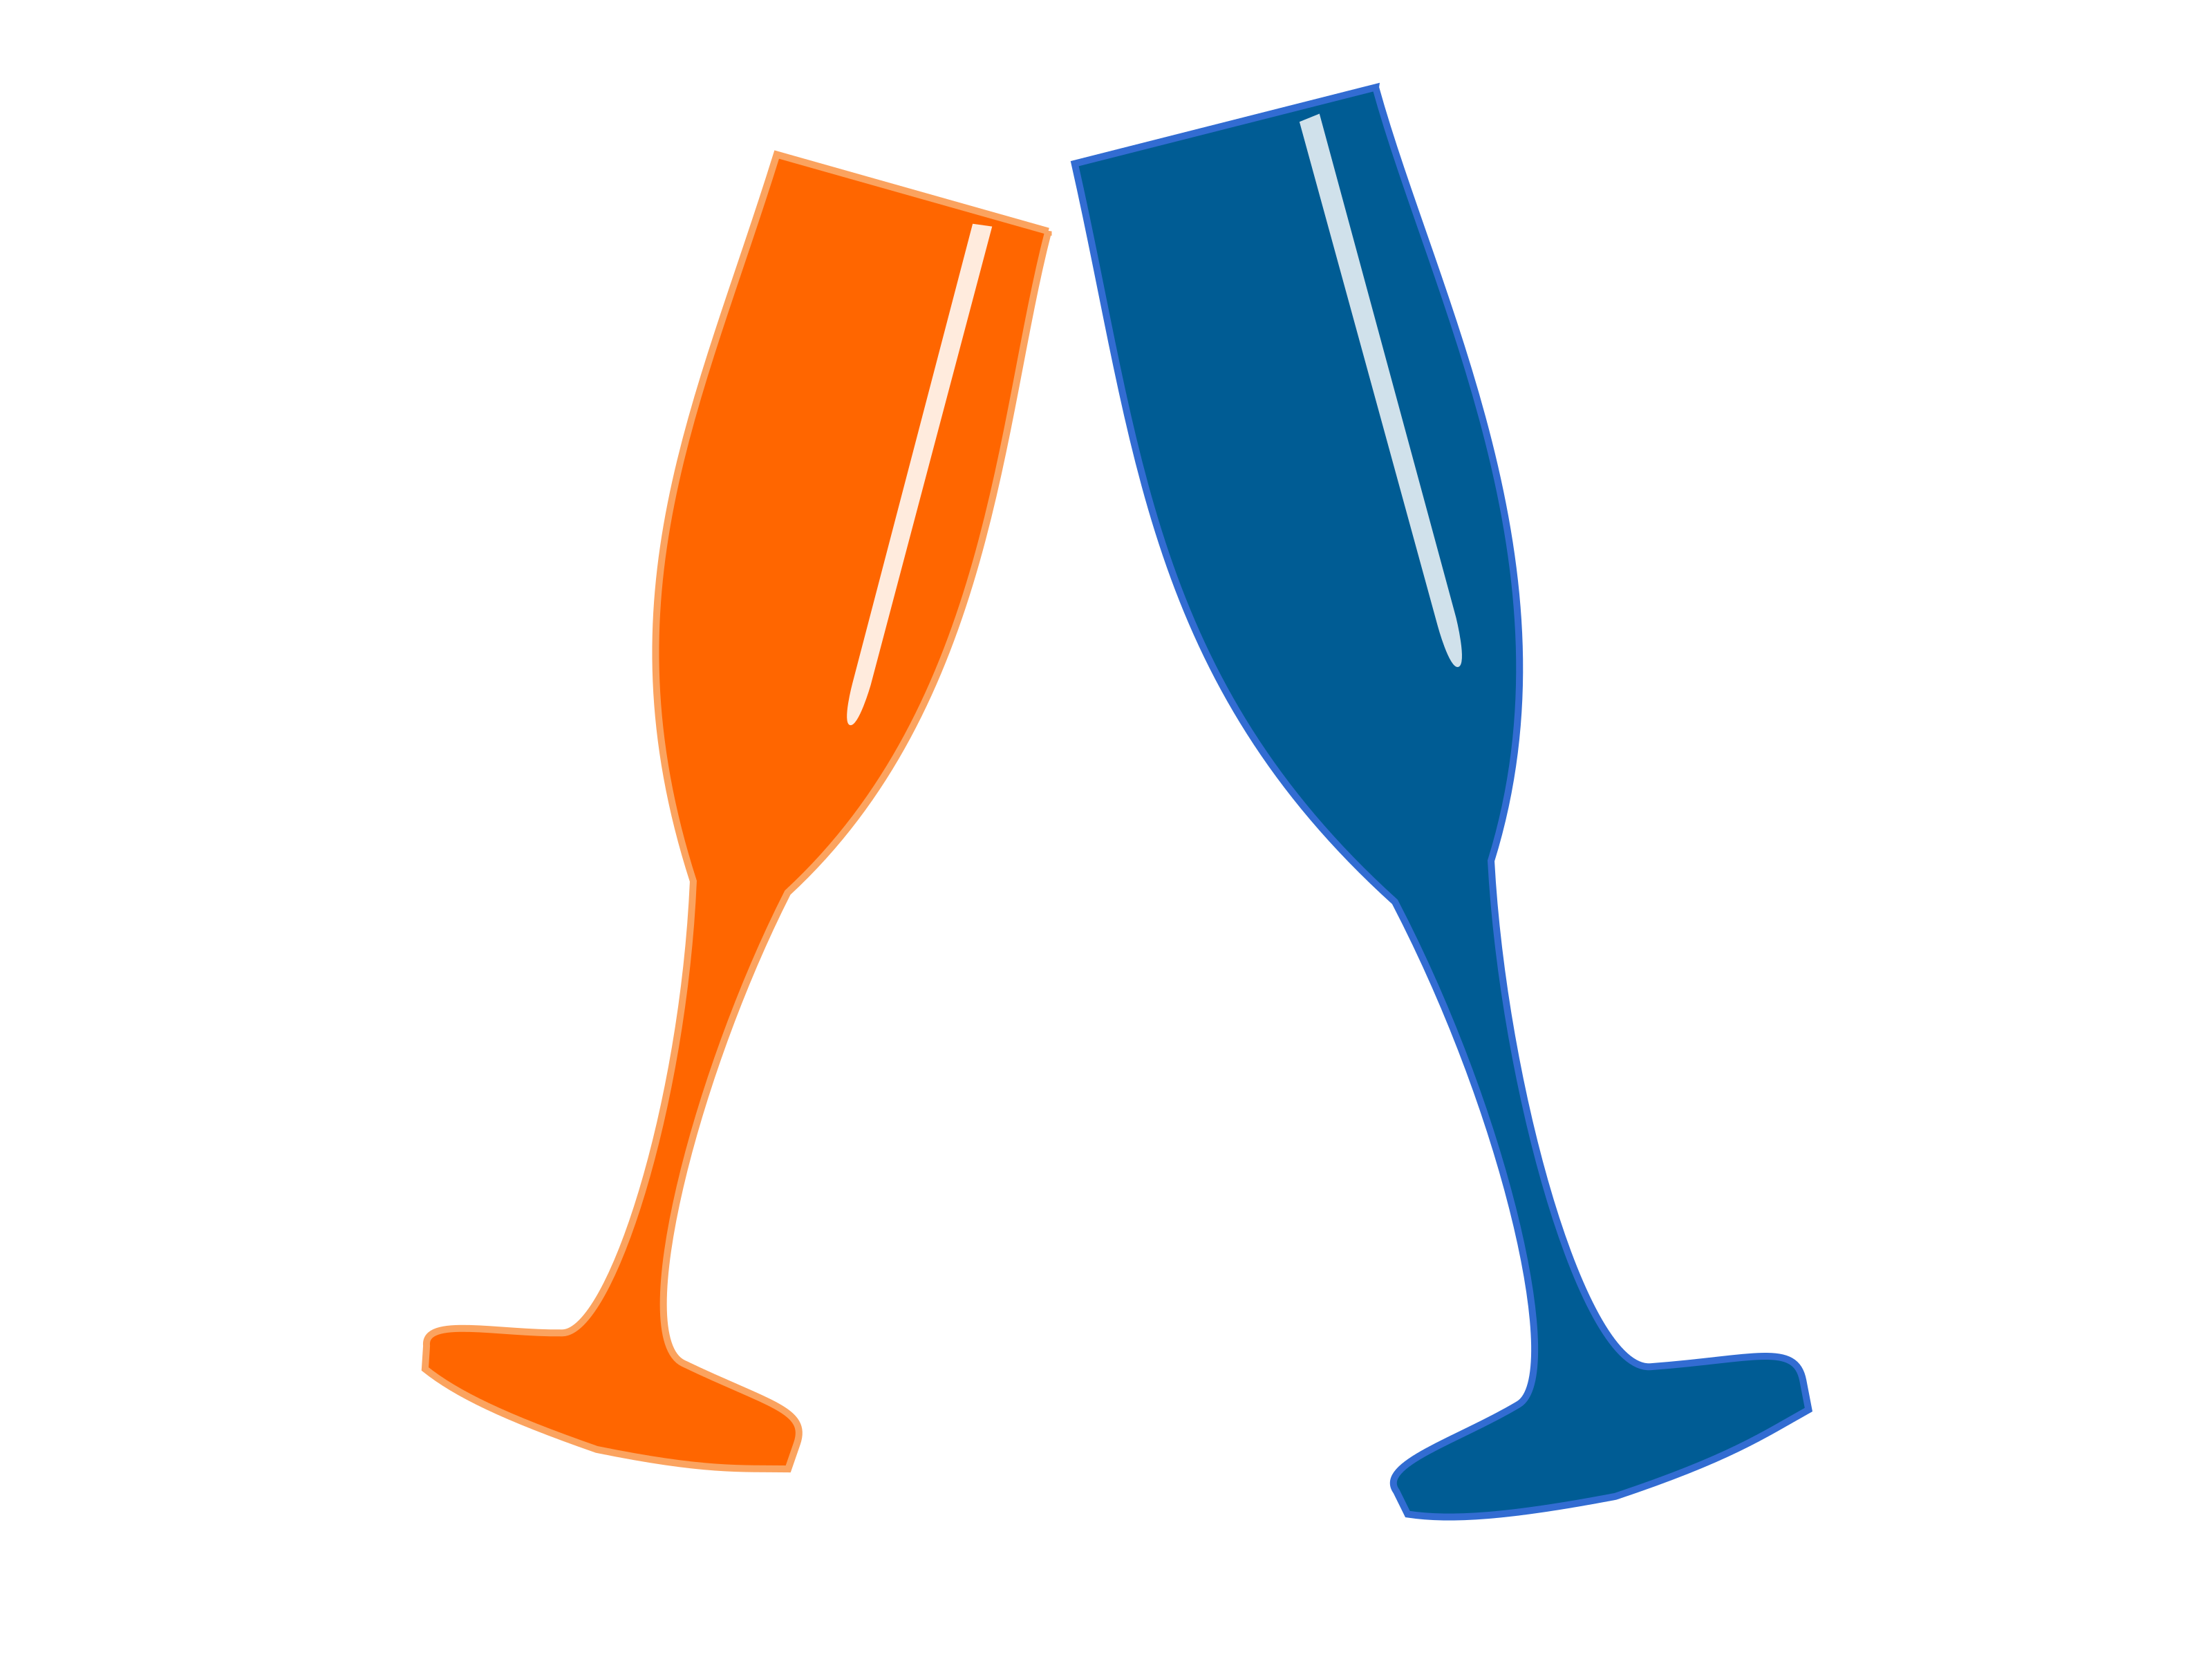 Party clipart champagne glass #8